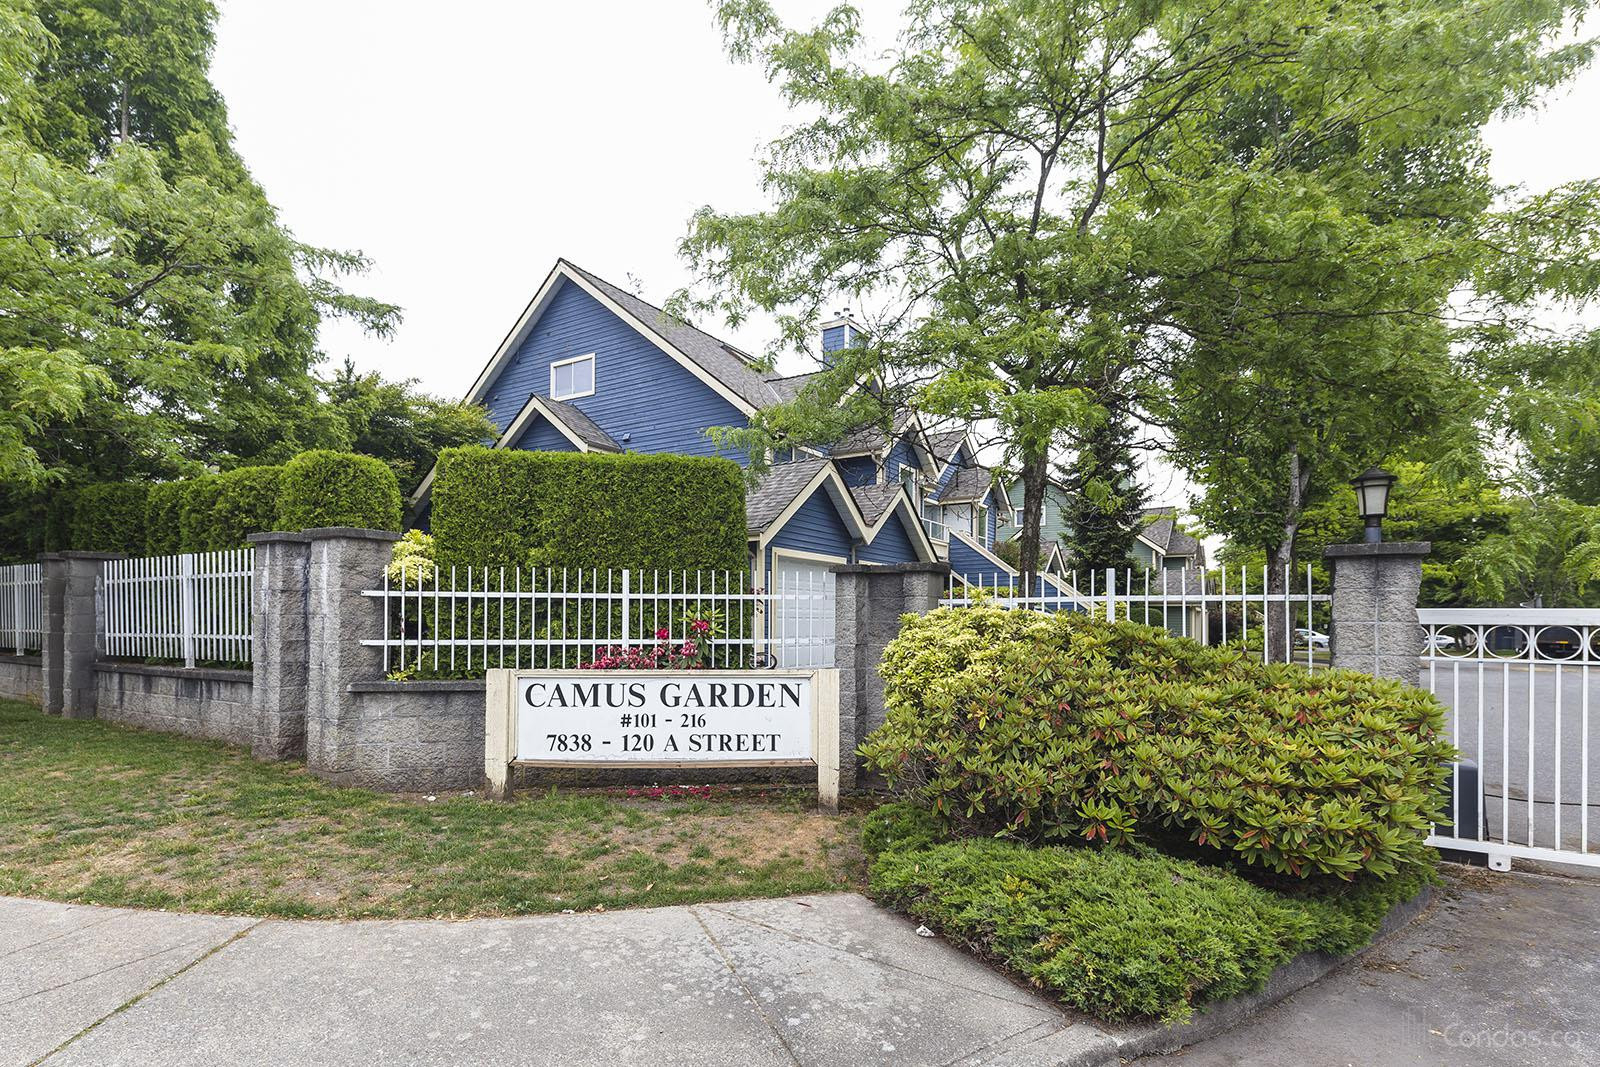 Camus Garden at 7838 120a St, Surrey 0